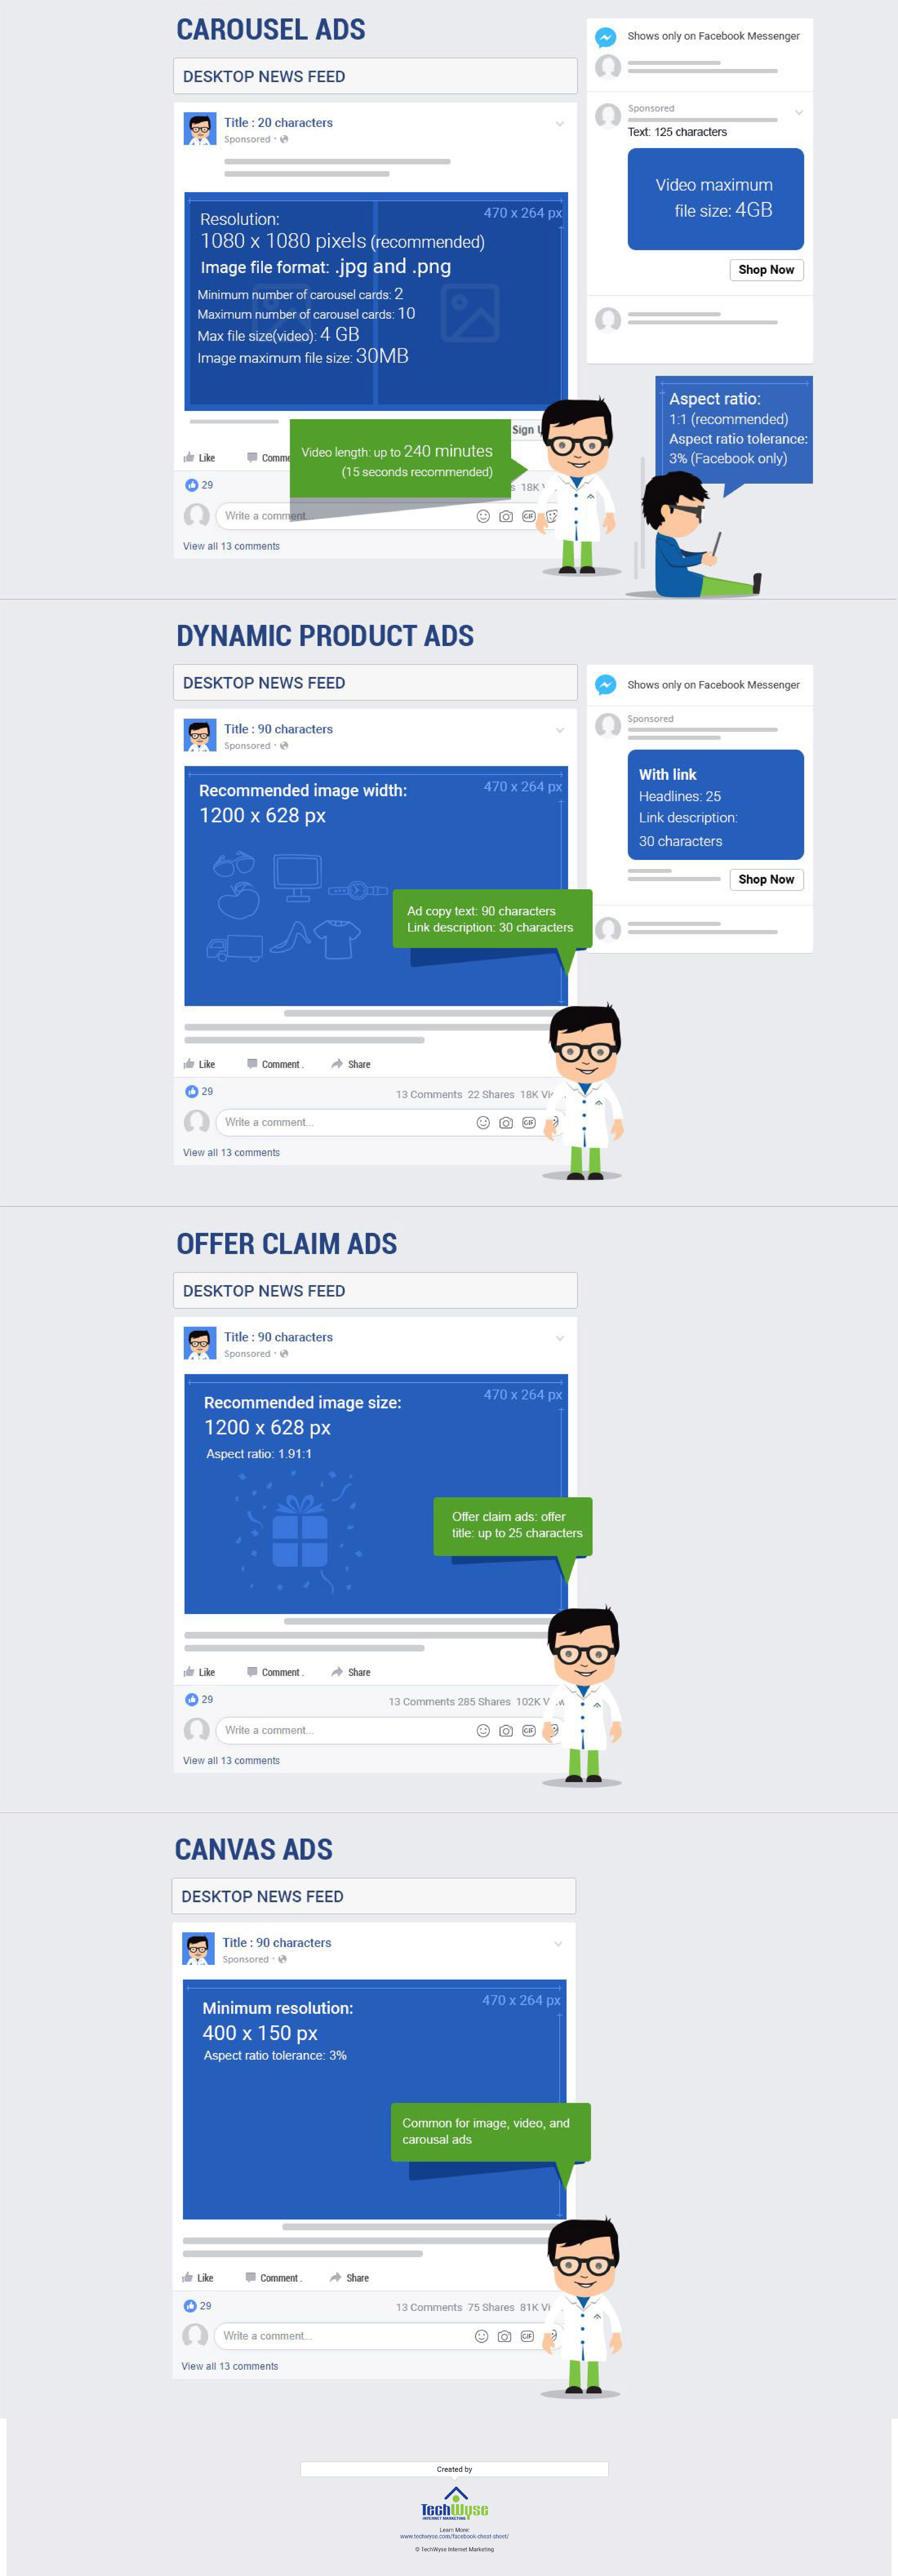 Facebook Carousel, Dynamic, Product, Offer, Claim, Canvas Ads